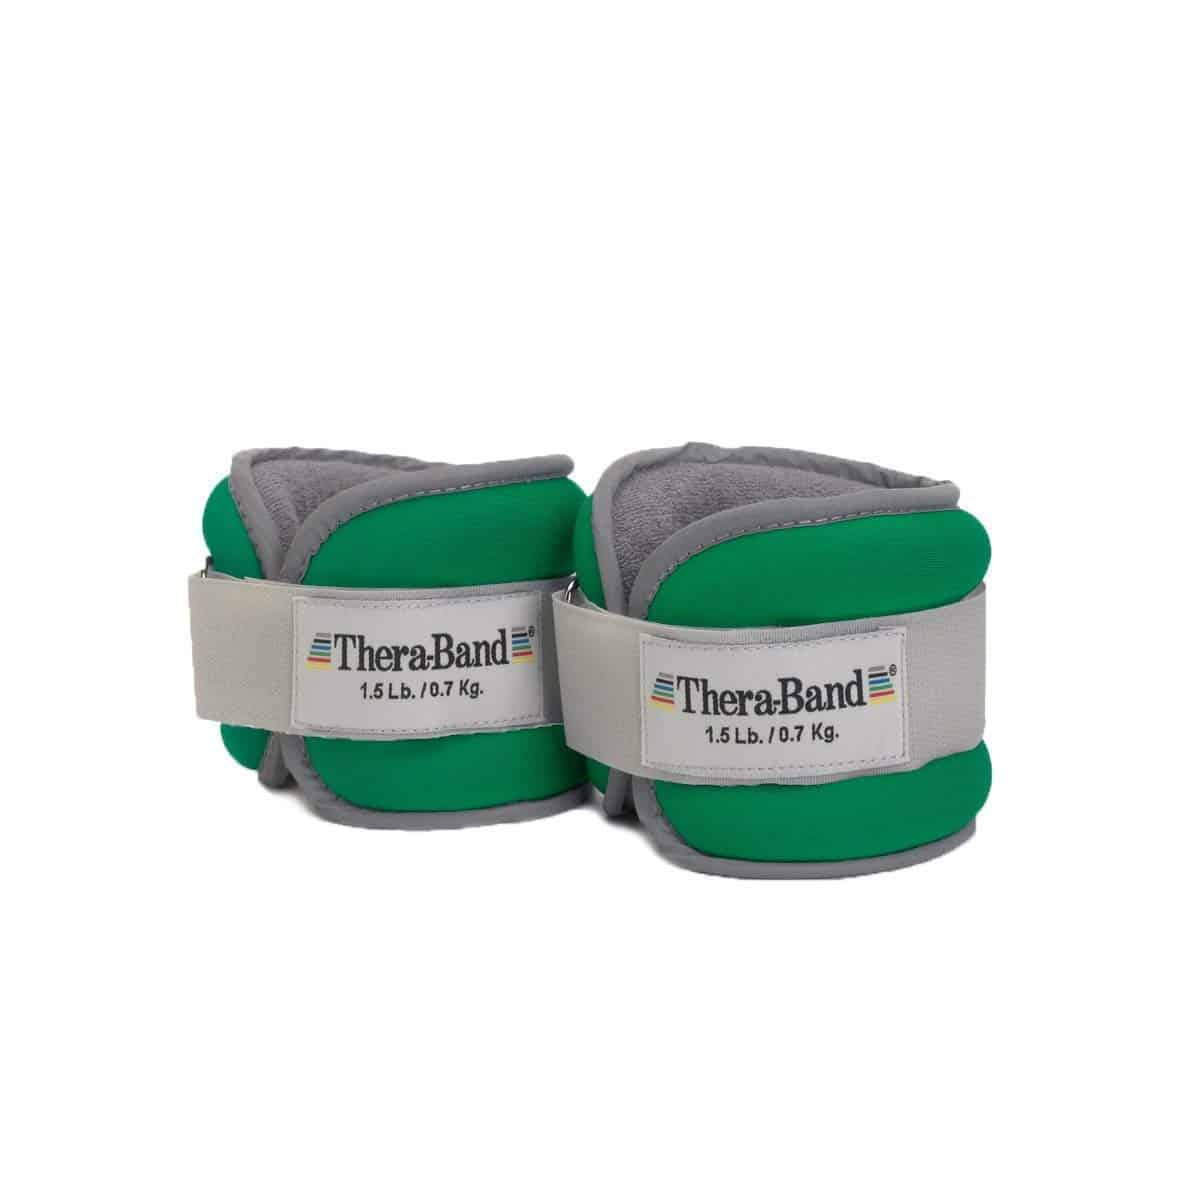 TheraBand Comfort Fit Ankle Wrist Cuff Wrap Weight Set